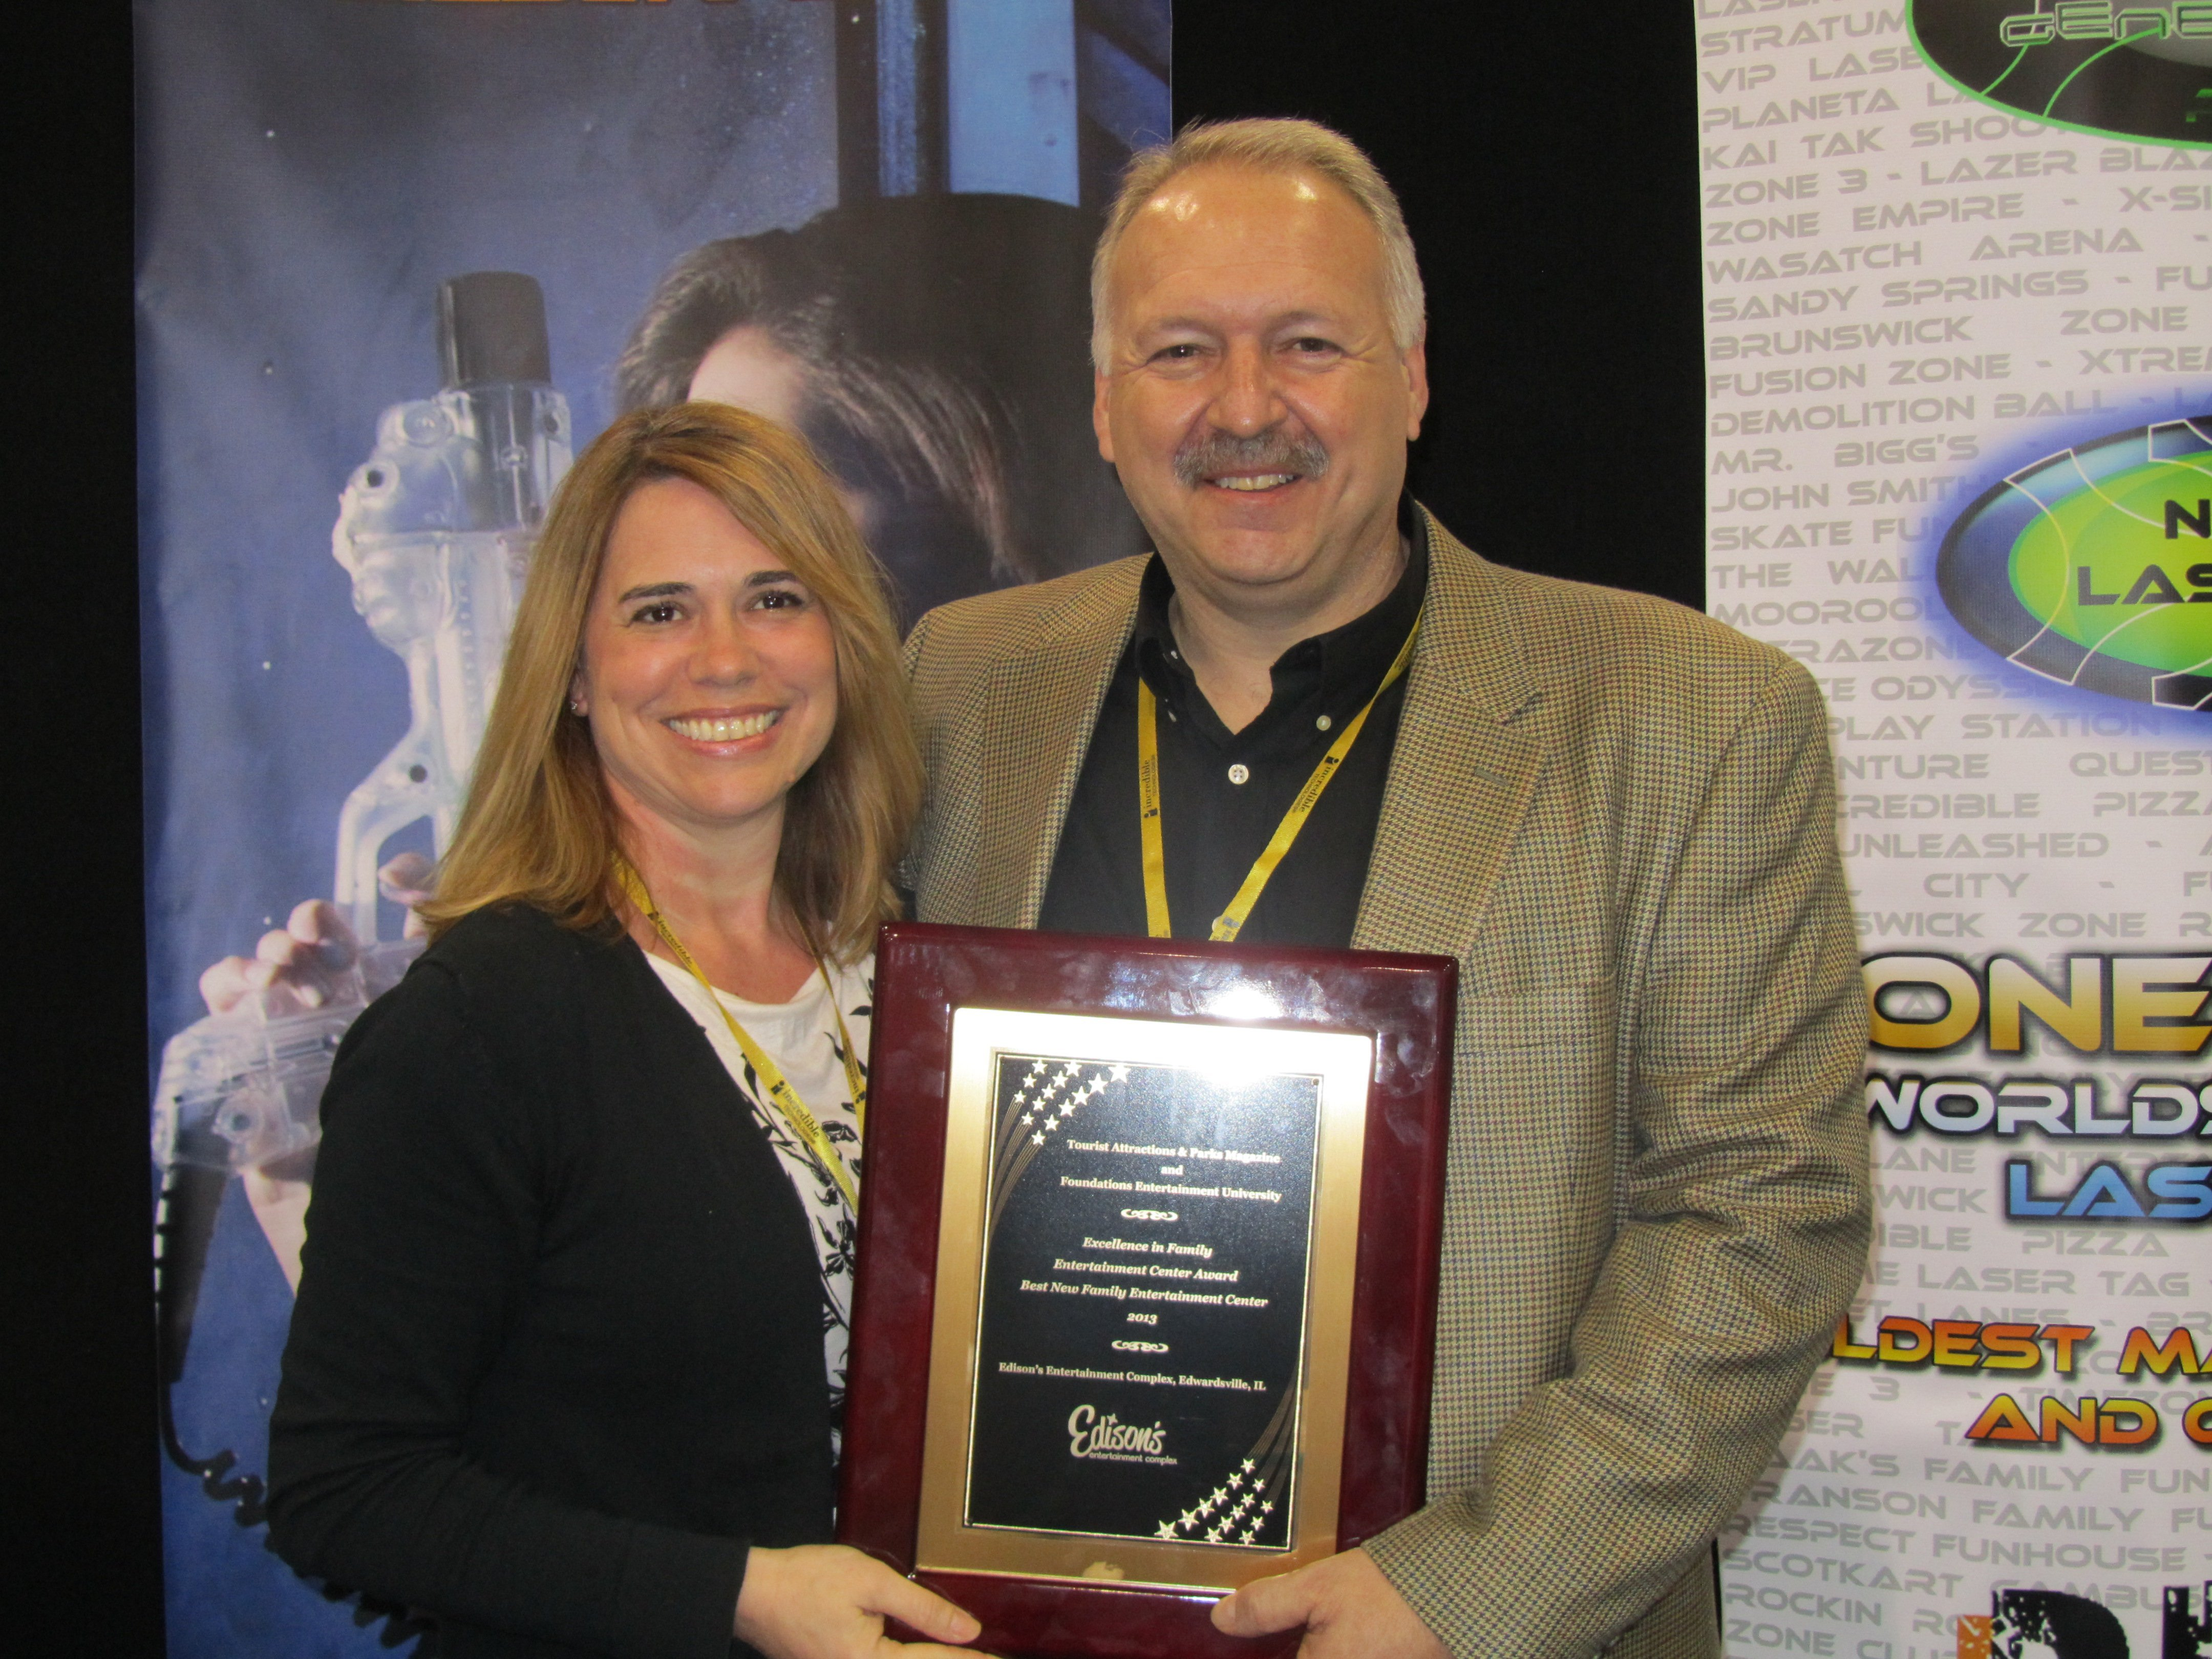 Mindy McSparin, CFO (Chief Family Officer) and wife of Matt McSparin and Matt McSparin, CEO (Chief Entertainment Officer) and managing partner of Edison's Entertainment Complex, received the 2013 Excellence in Family Entertainment Centers Award for Best New FEC.